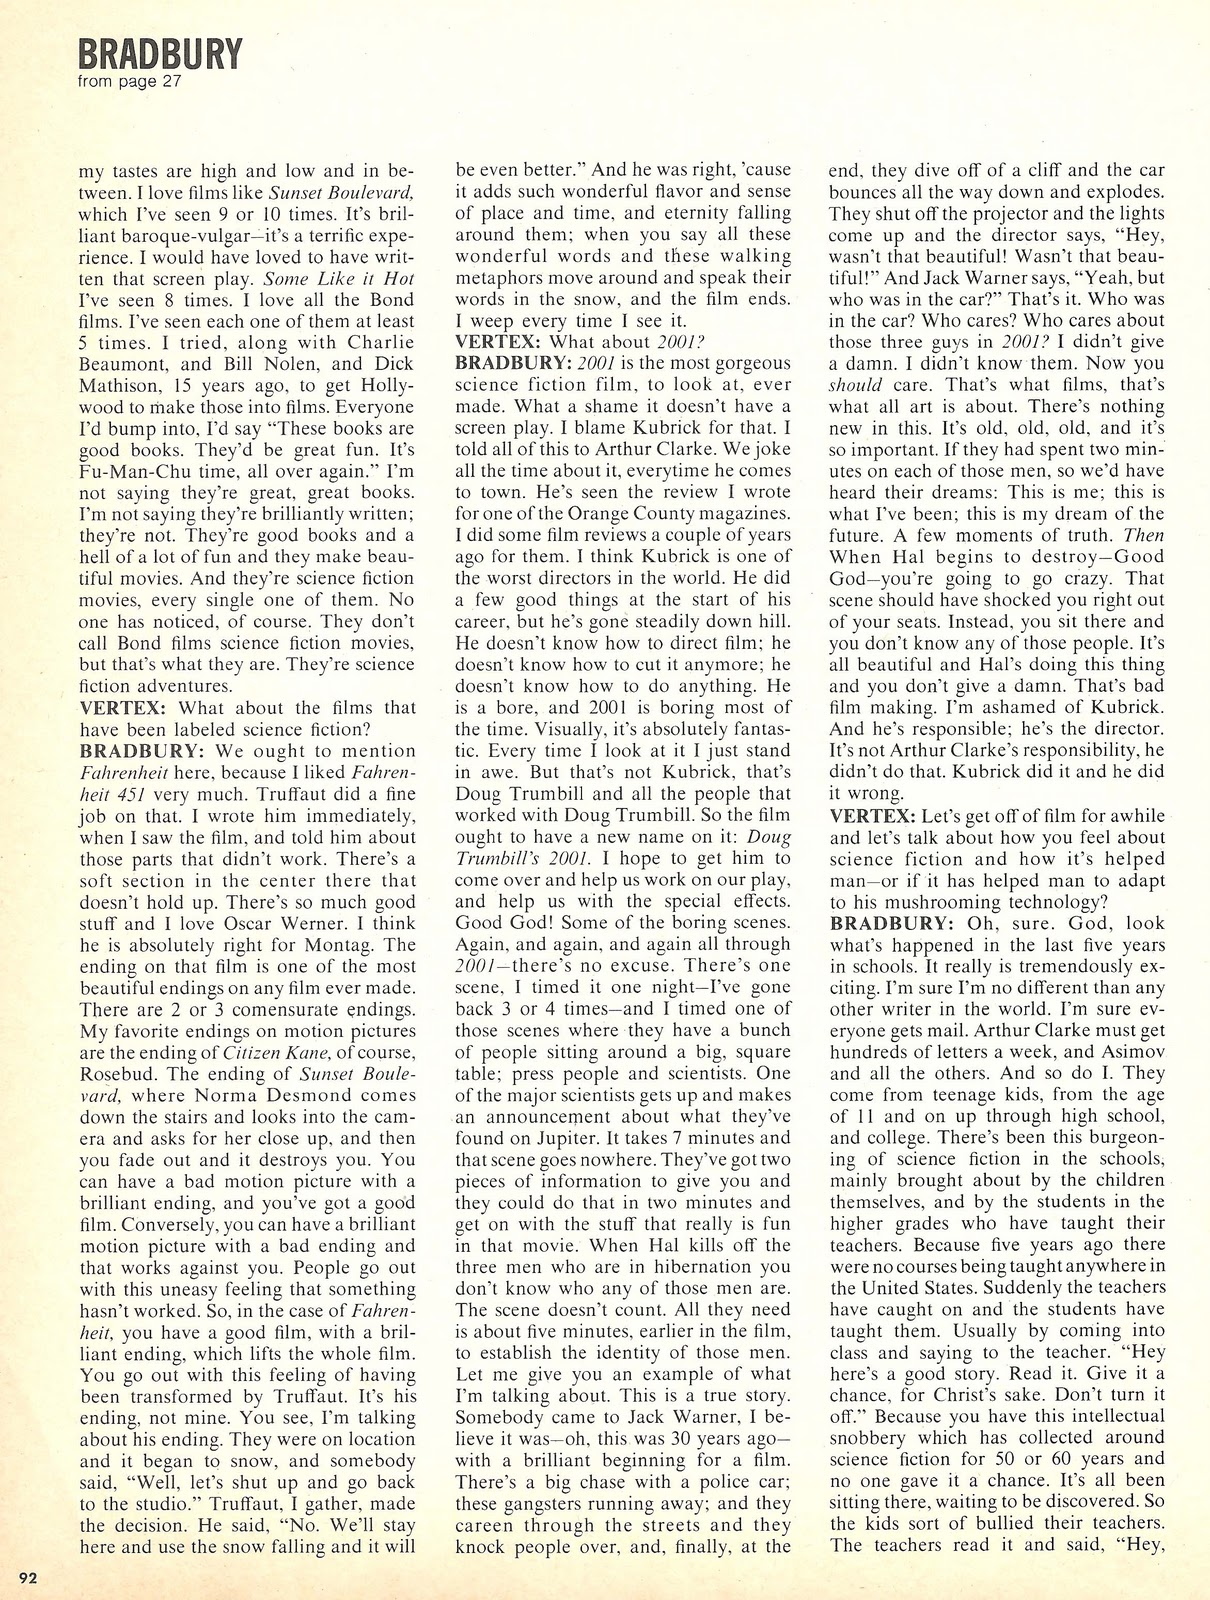 philosophy of science portal deceased ray bradbury click to enlarge for reading